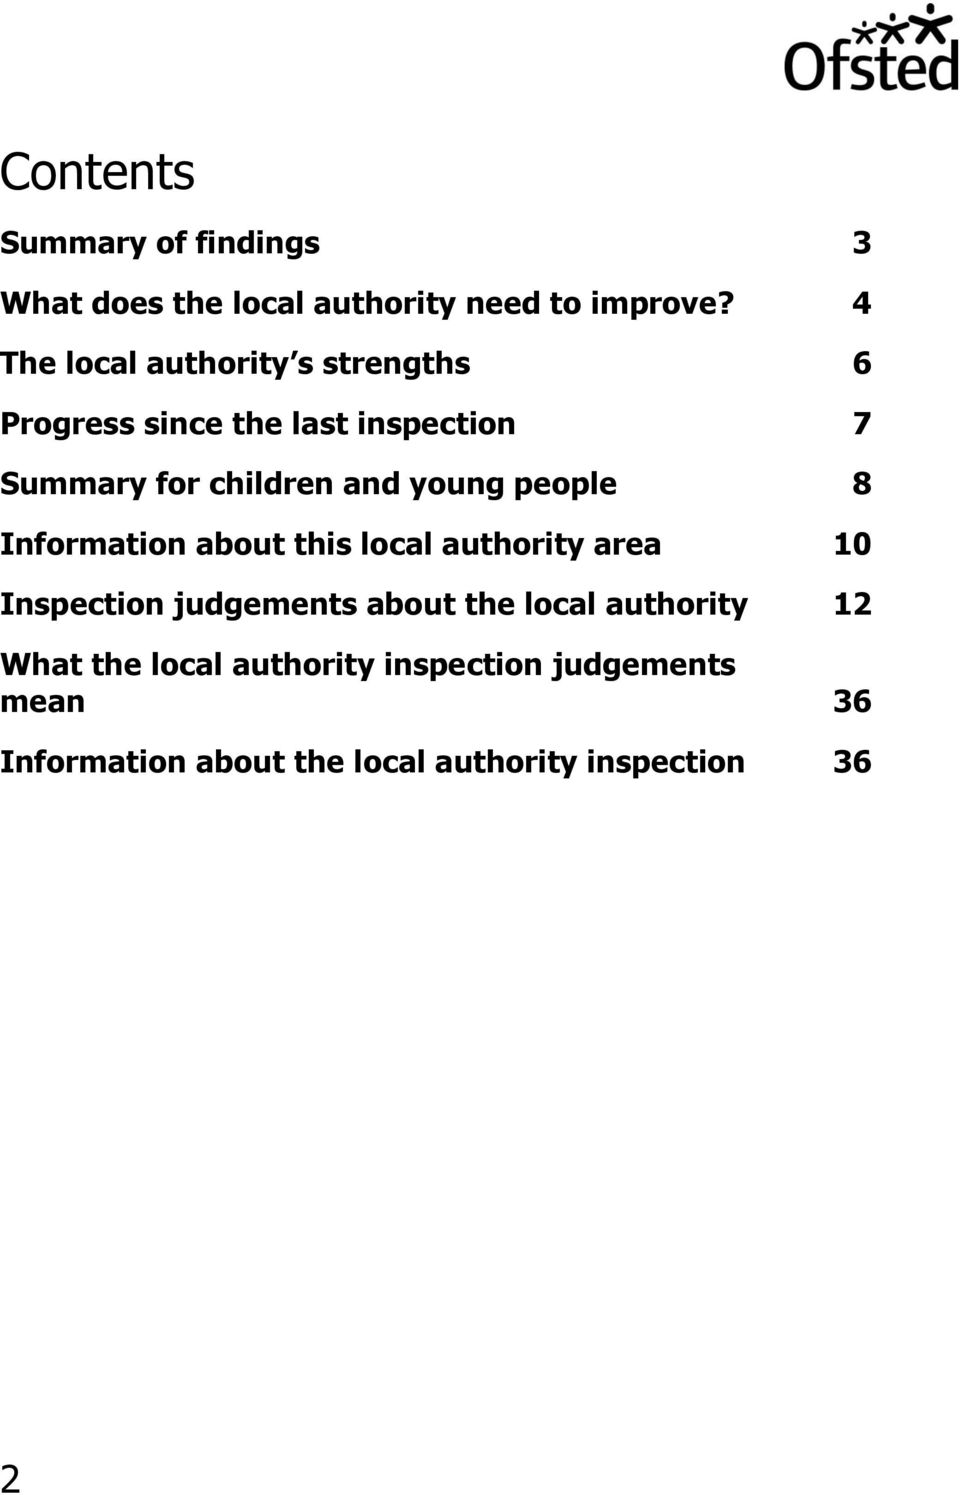 young people 8 Information about this local authority area 10 Inspection judgements about the local